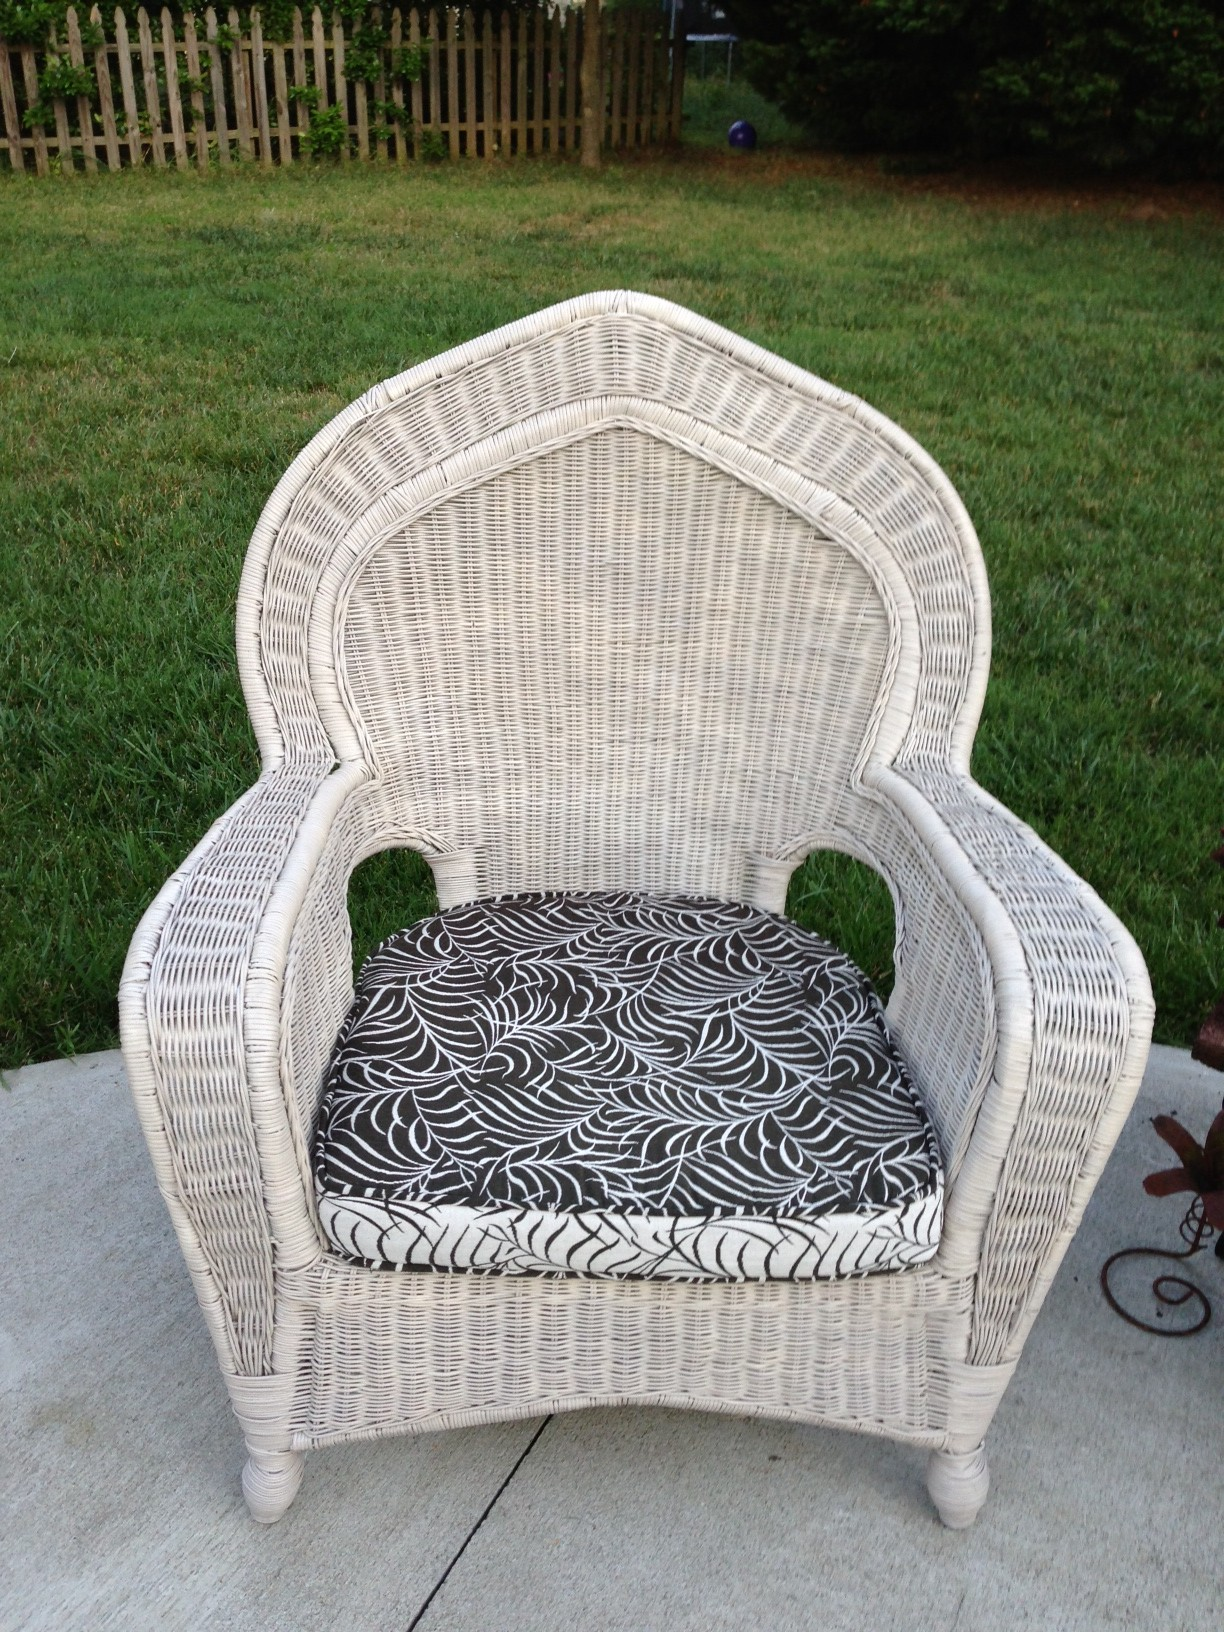 Pier 1 wicker seats fresh vintage nc